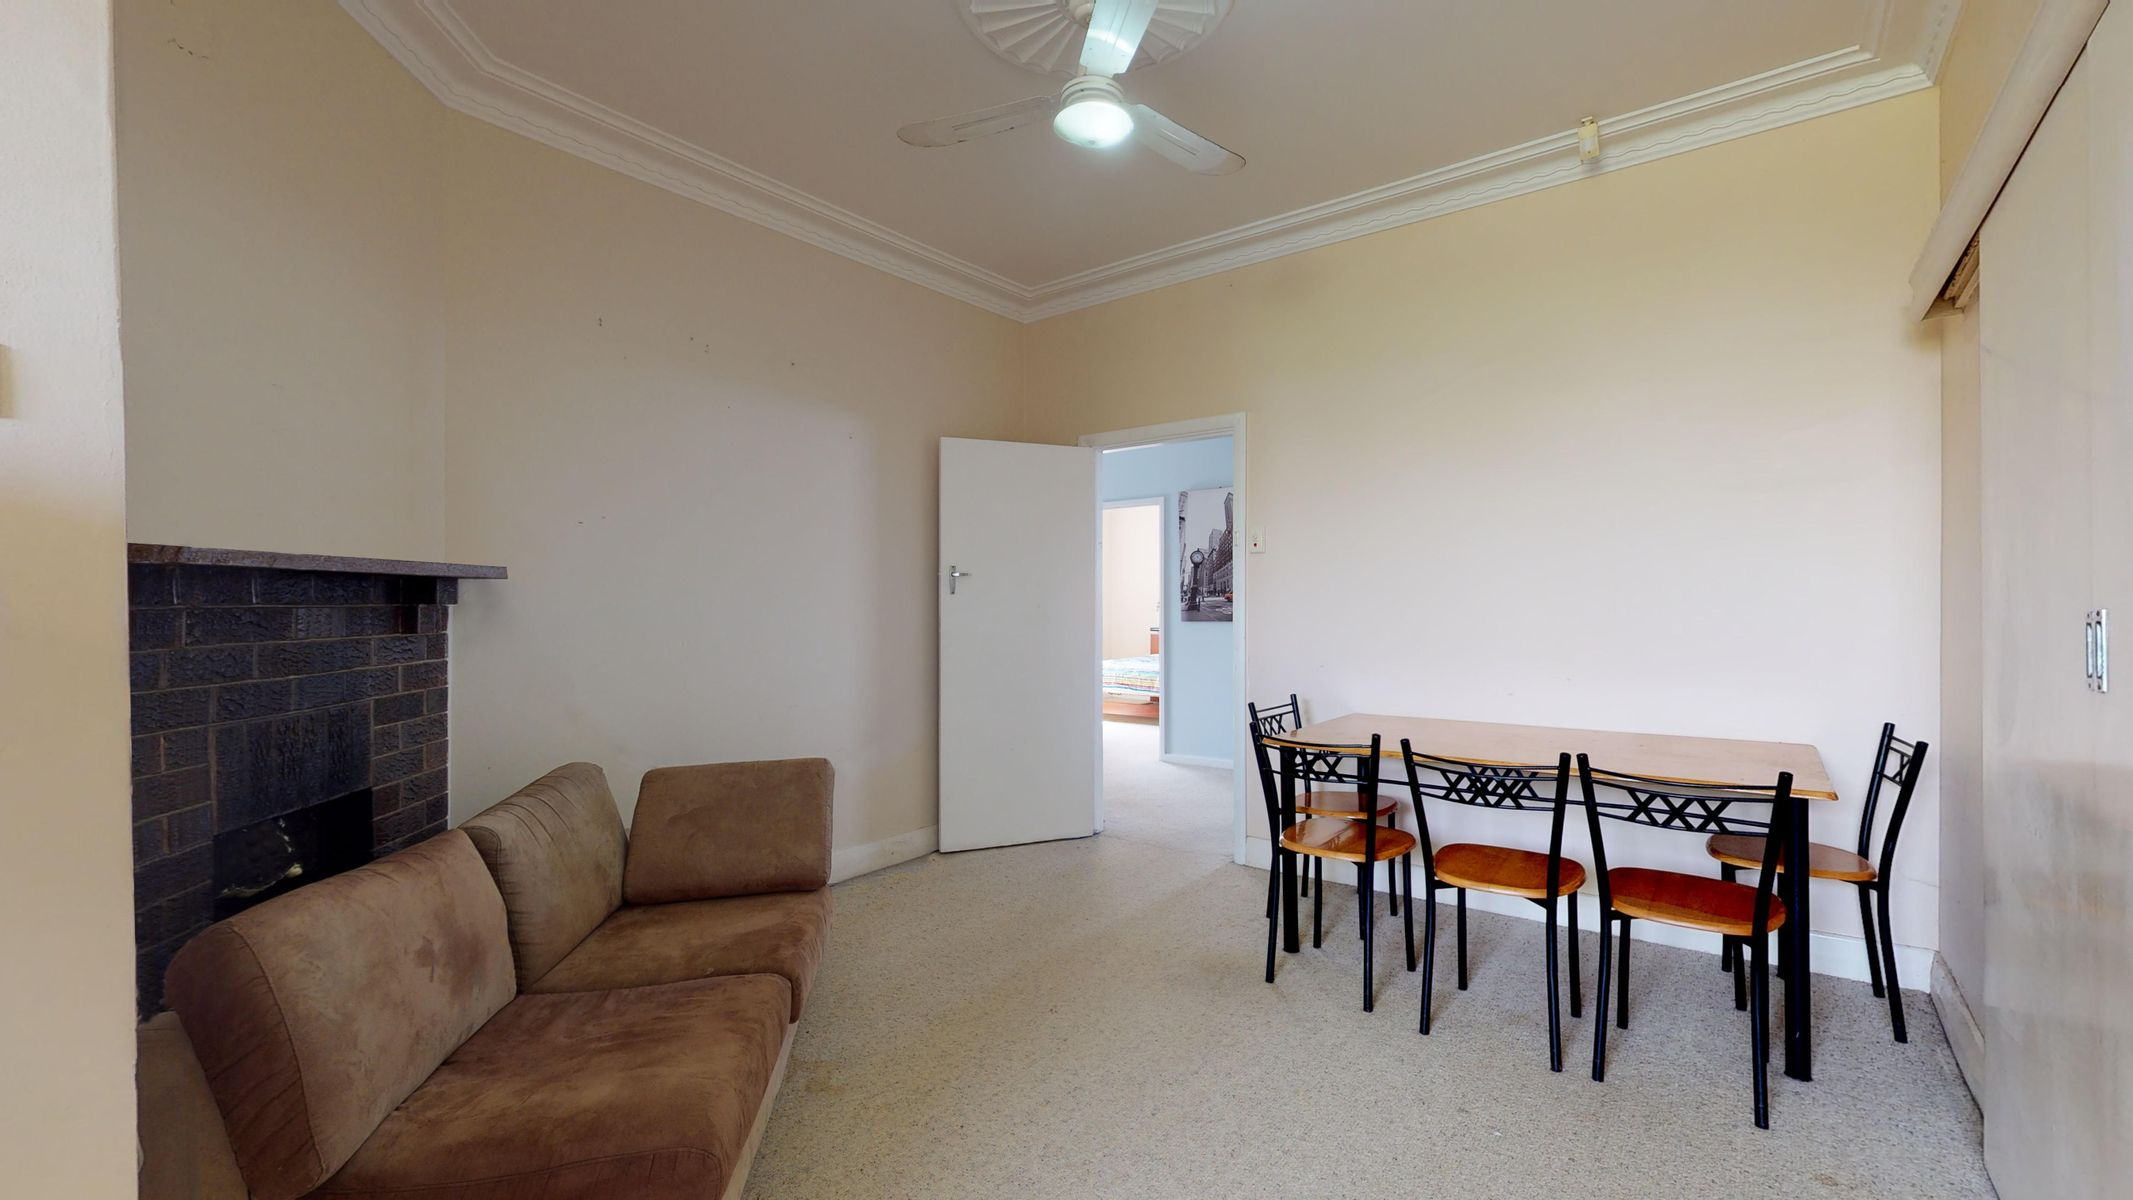 Room 4/206 Marsden Street, Shortland, NSW 2307